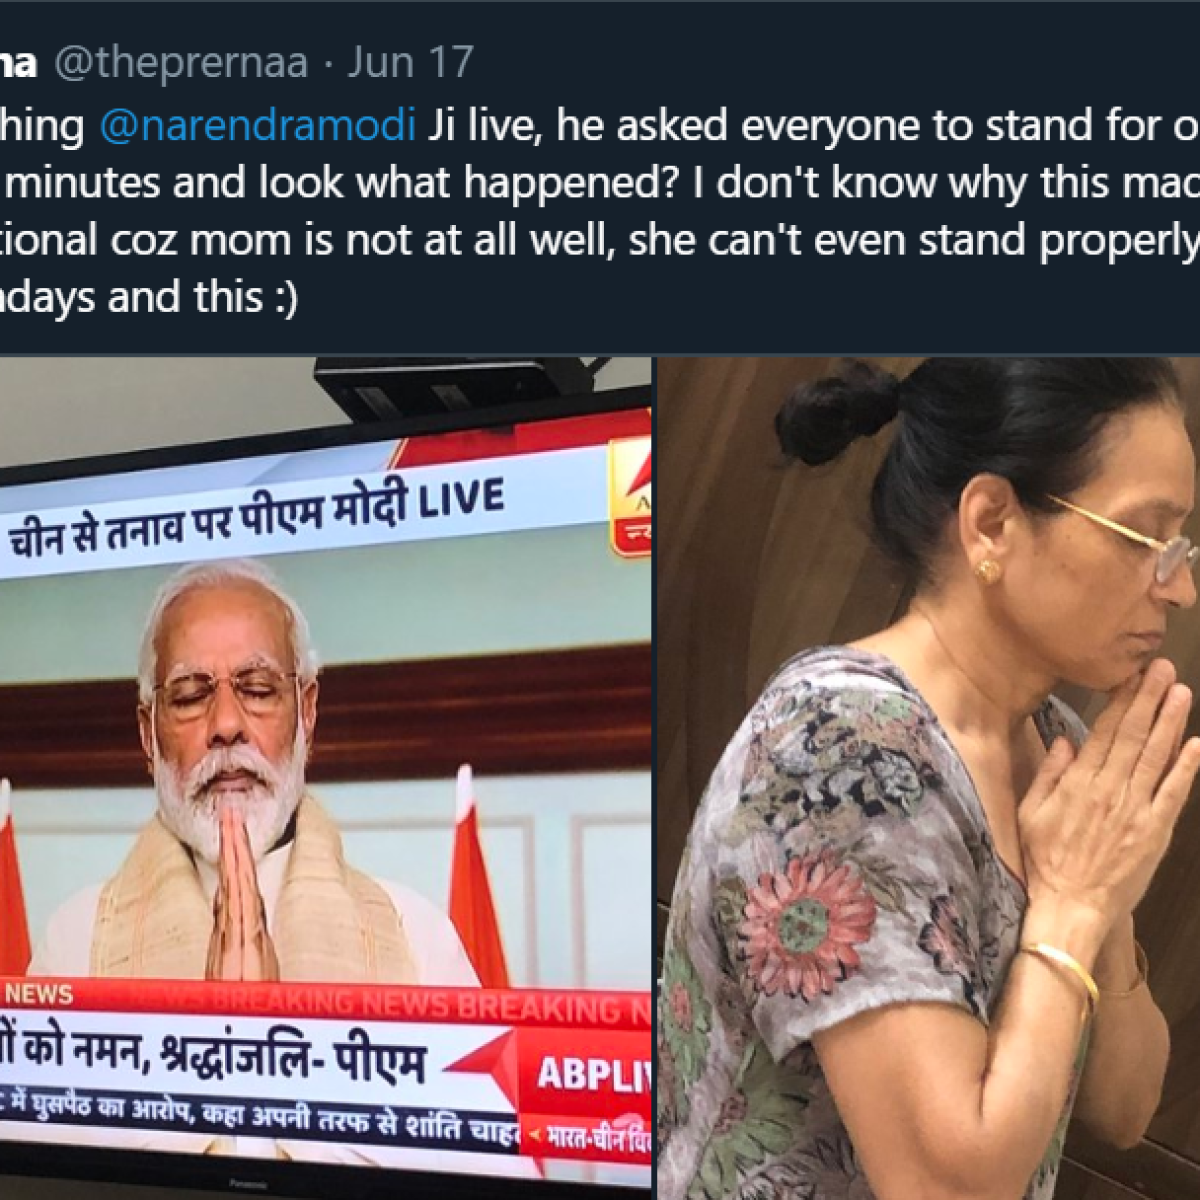 This Twitter user's mother was mocked by 'intellectuals' for standing by PM Modi and Army - here's how she felt